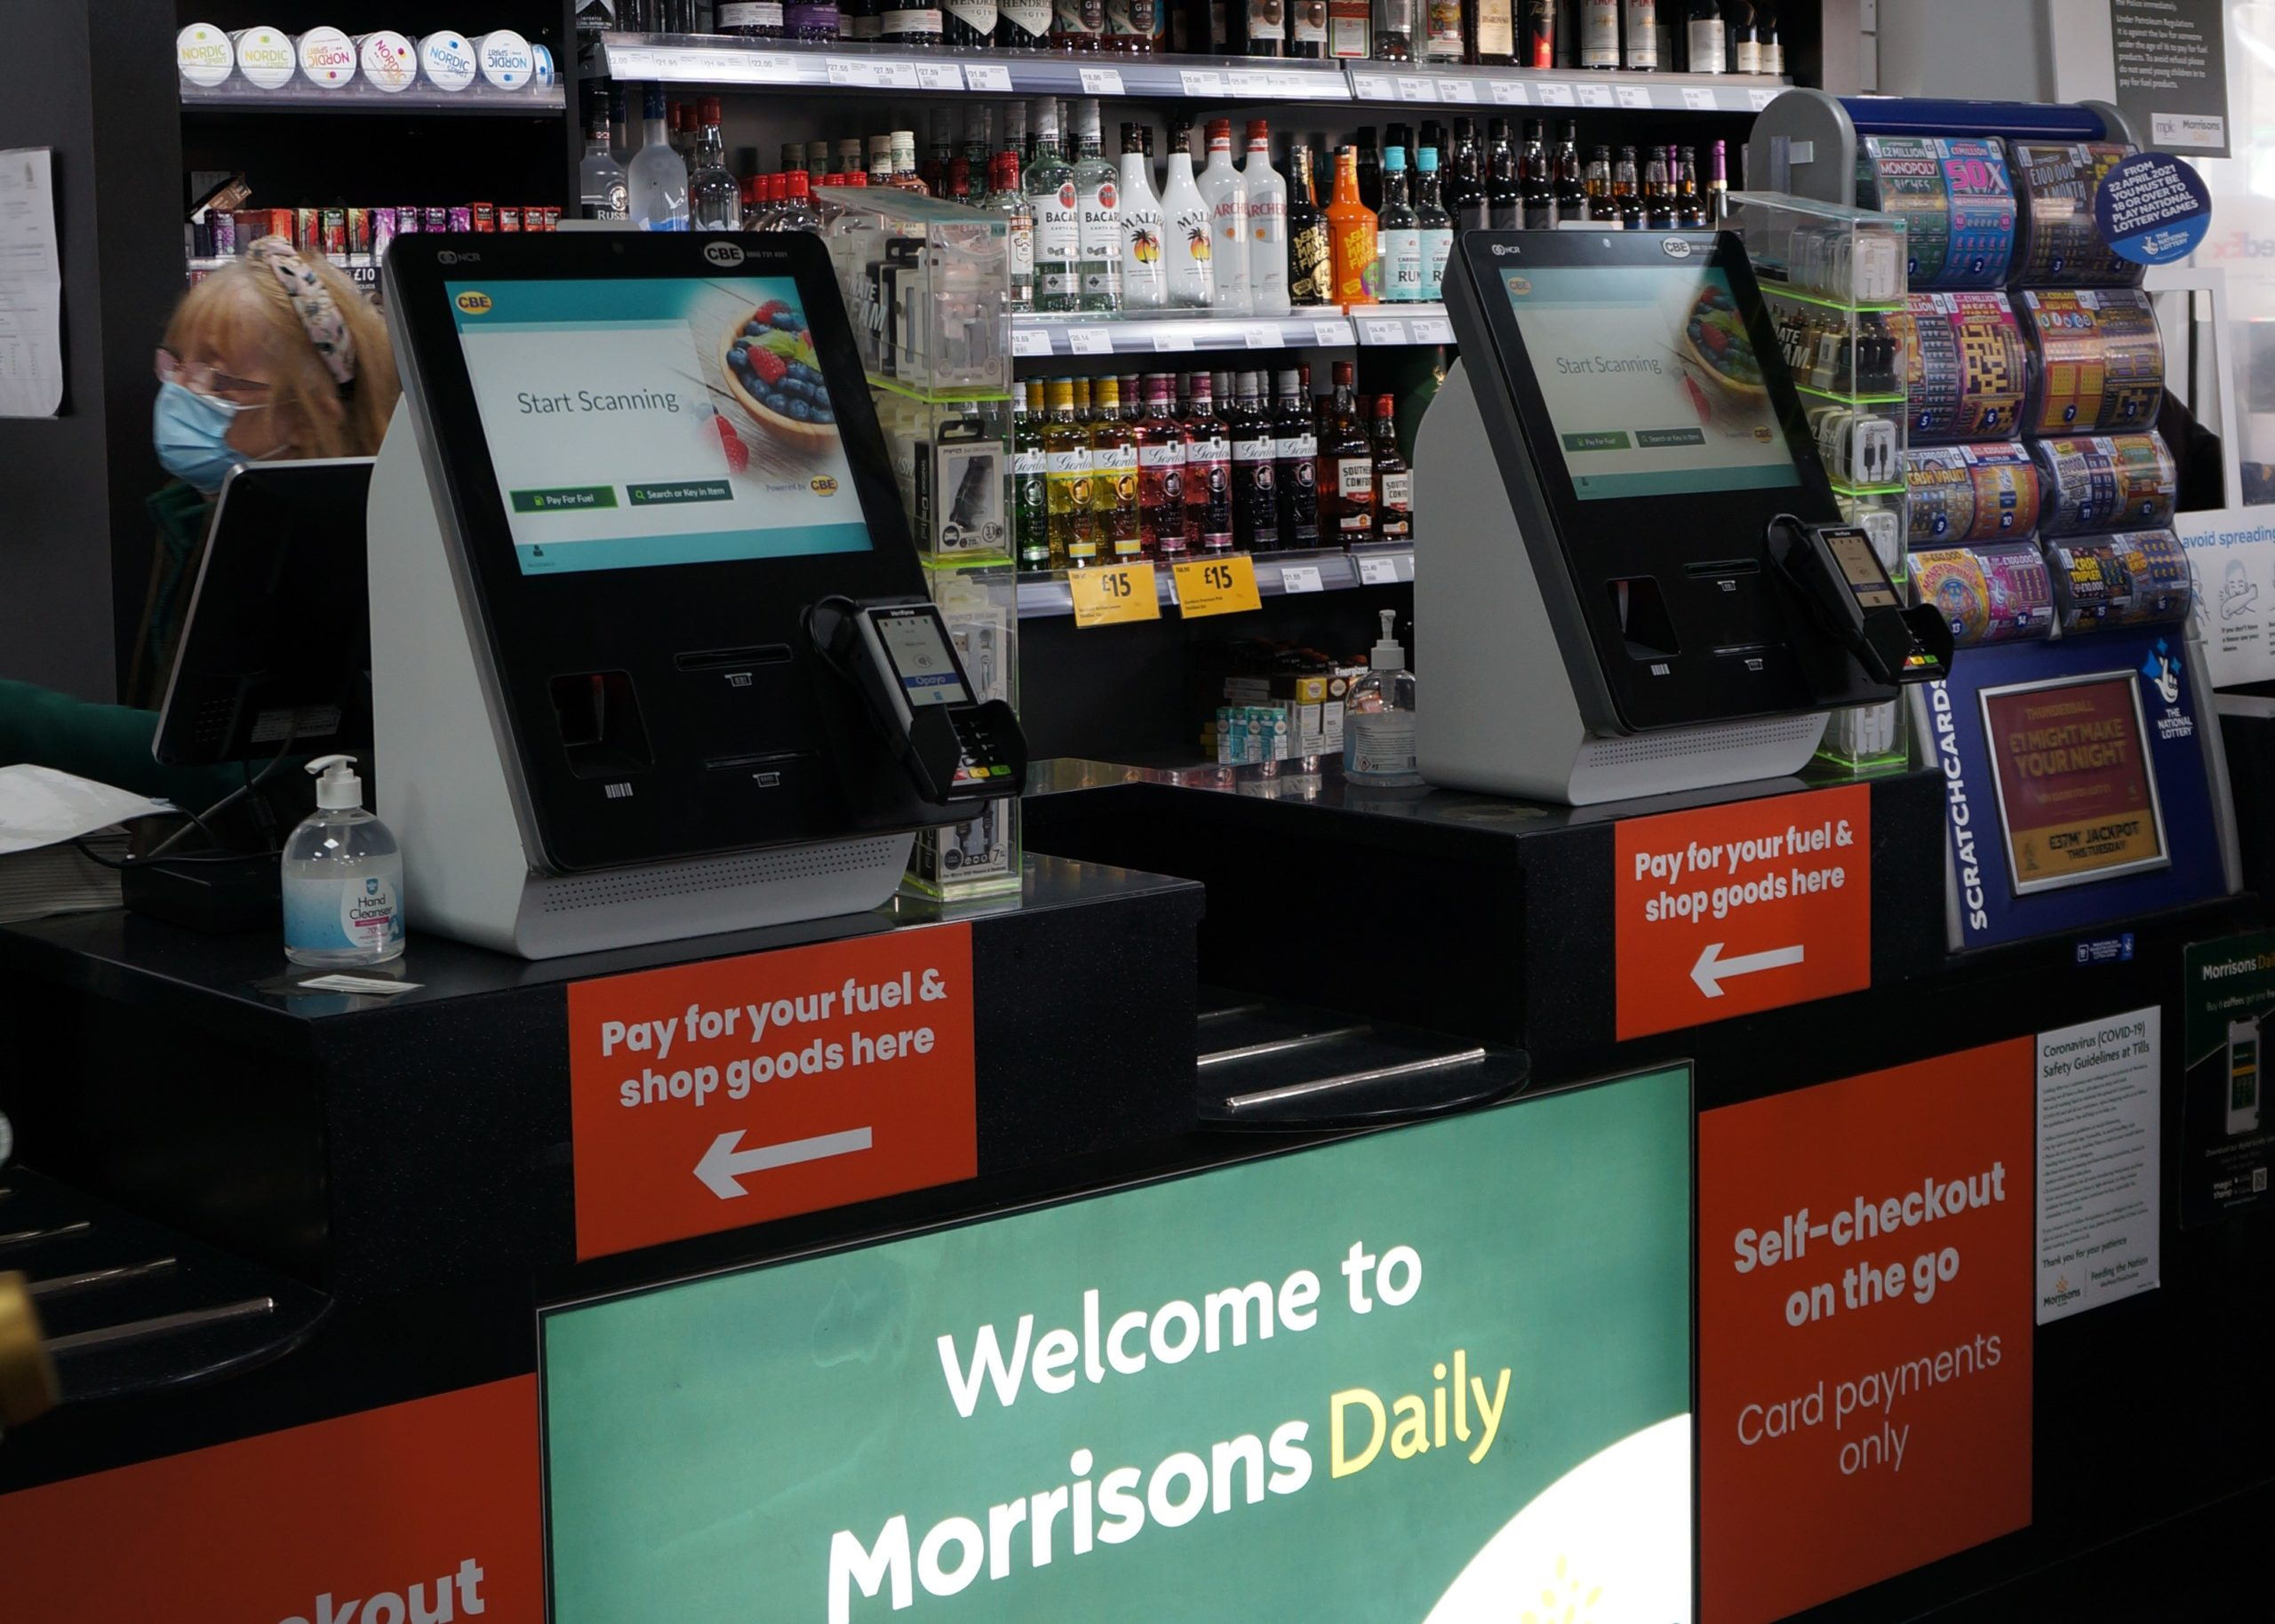 MPK Garages Riverside – Fuel on Self-Checkout